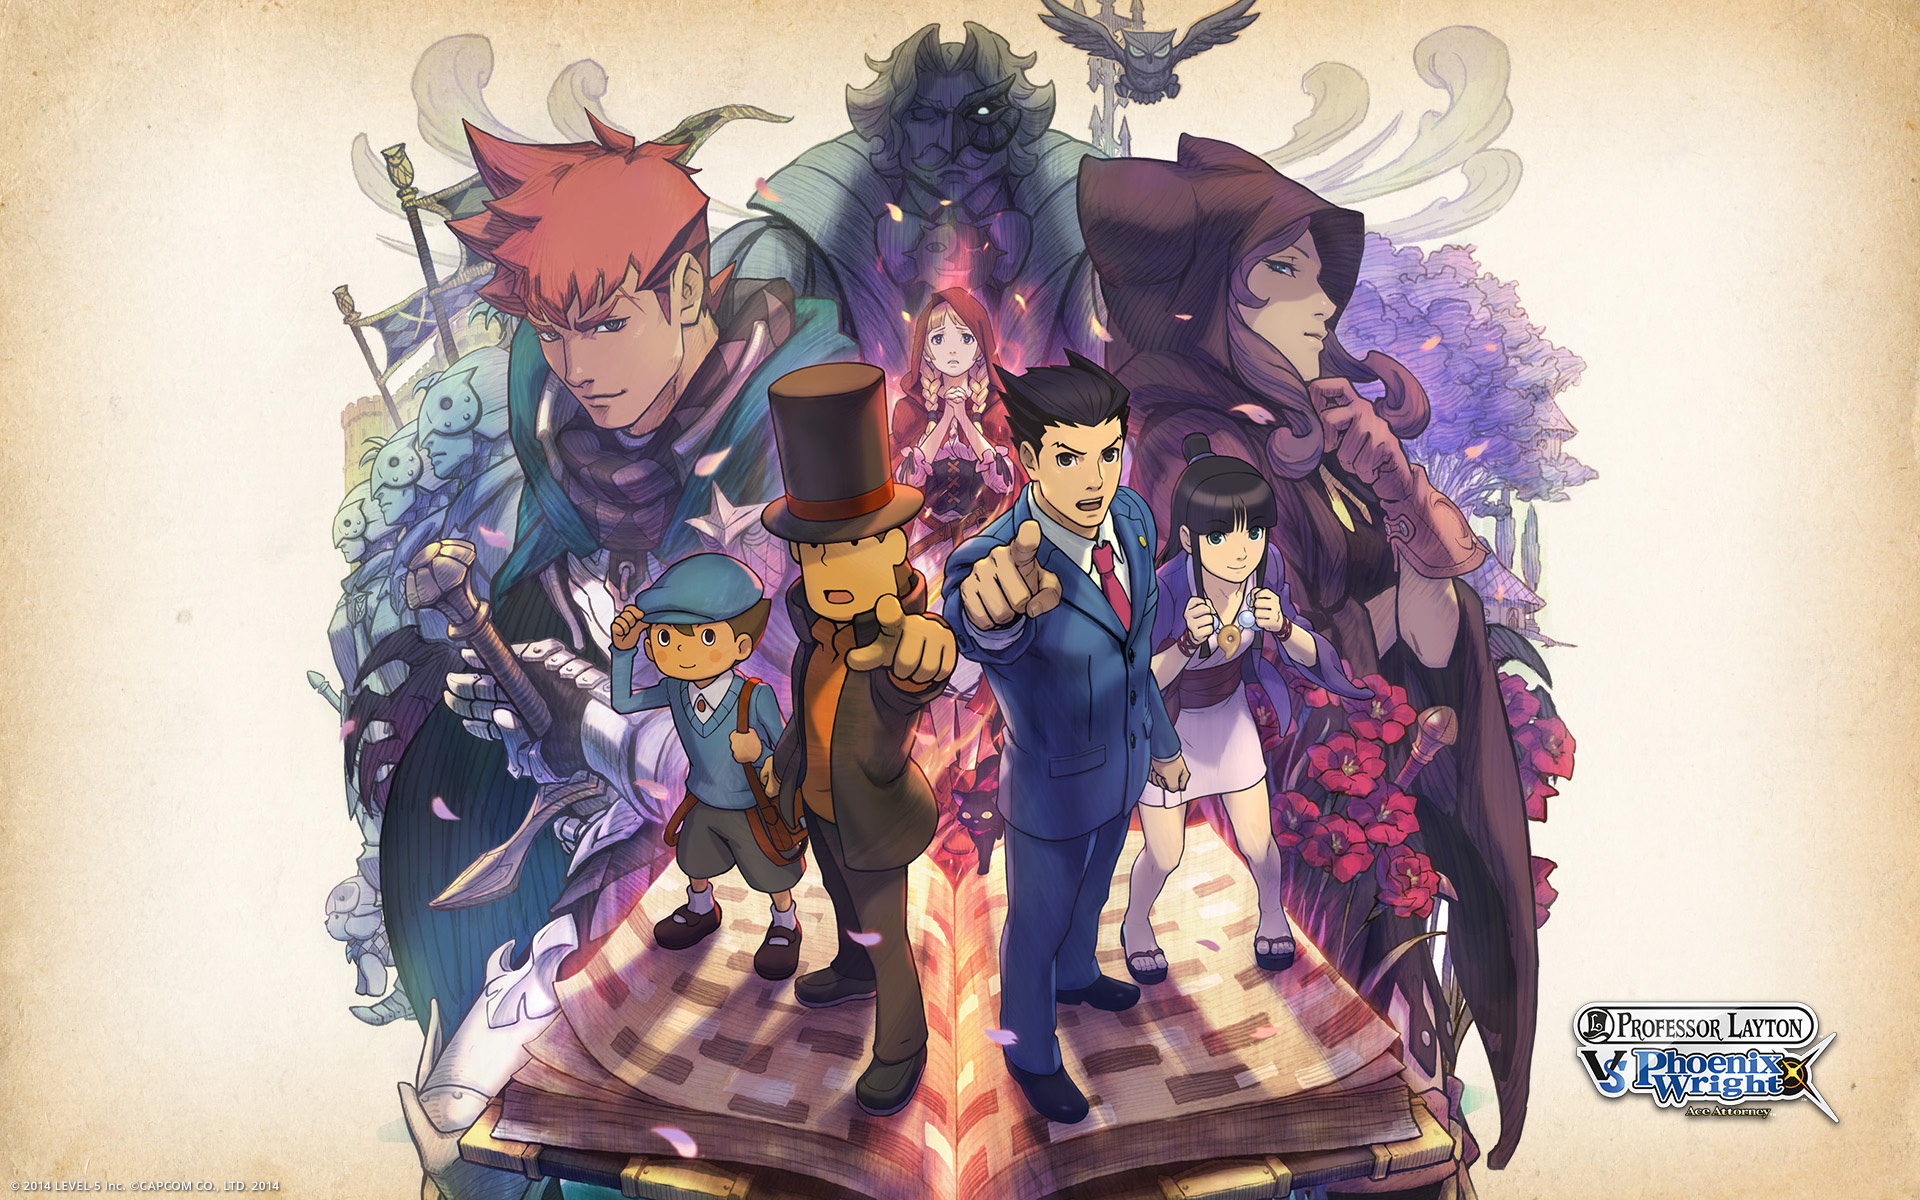 Professor Layton Vs Phoenix Wright Ace Attorney 2012